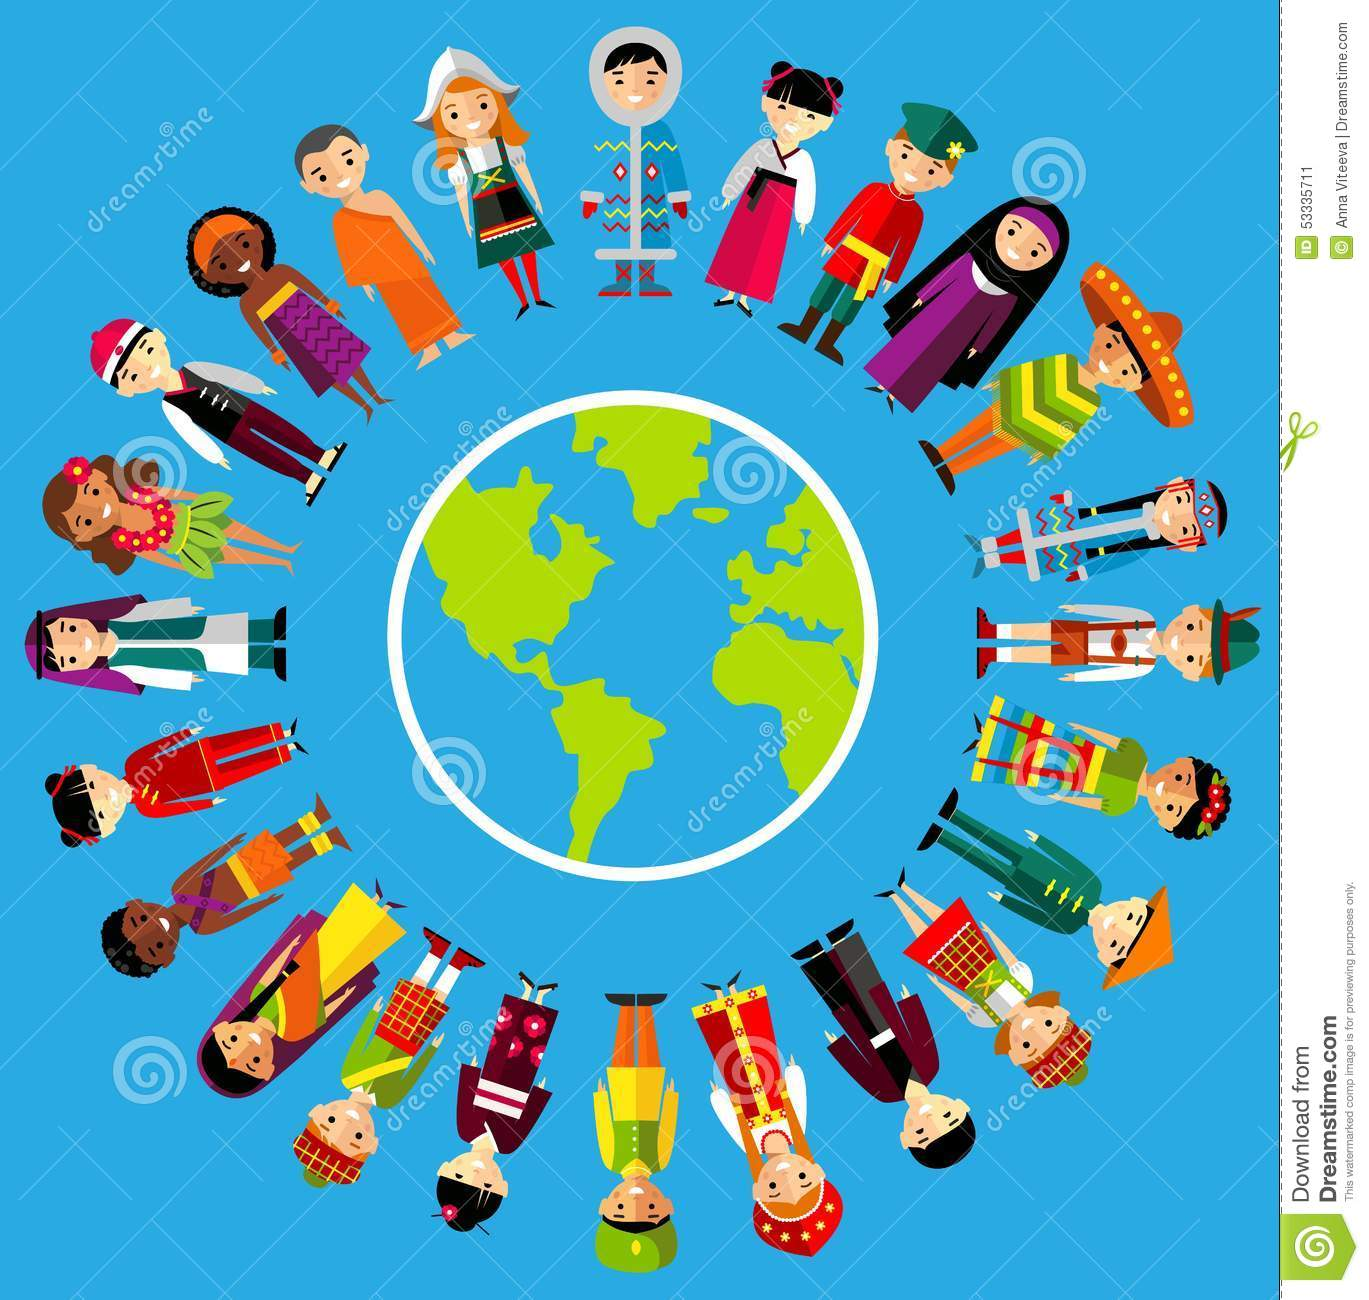 Stock Illustration Vector Illustration Multicultural National Children People Planet Earth Set International Traditional Costumes Around Image53335711 on Earth Day Activities